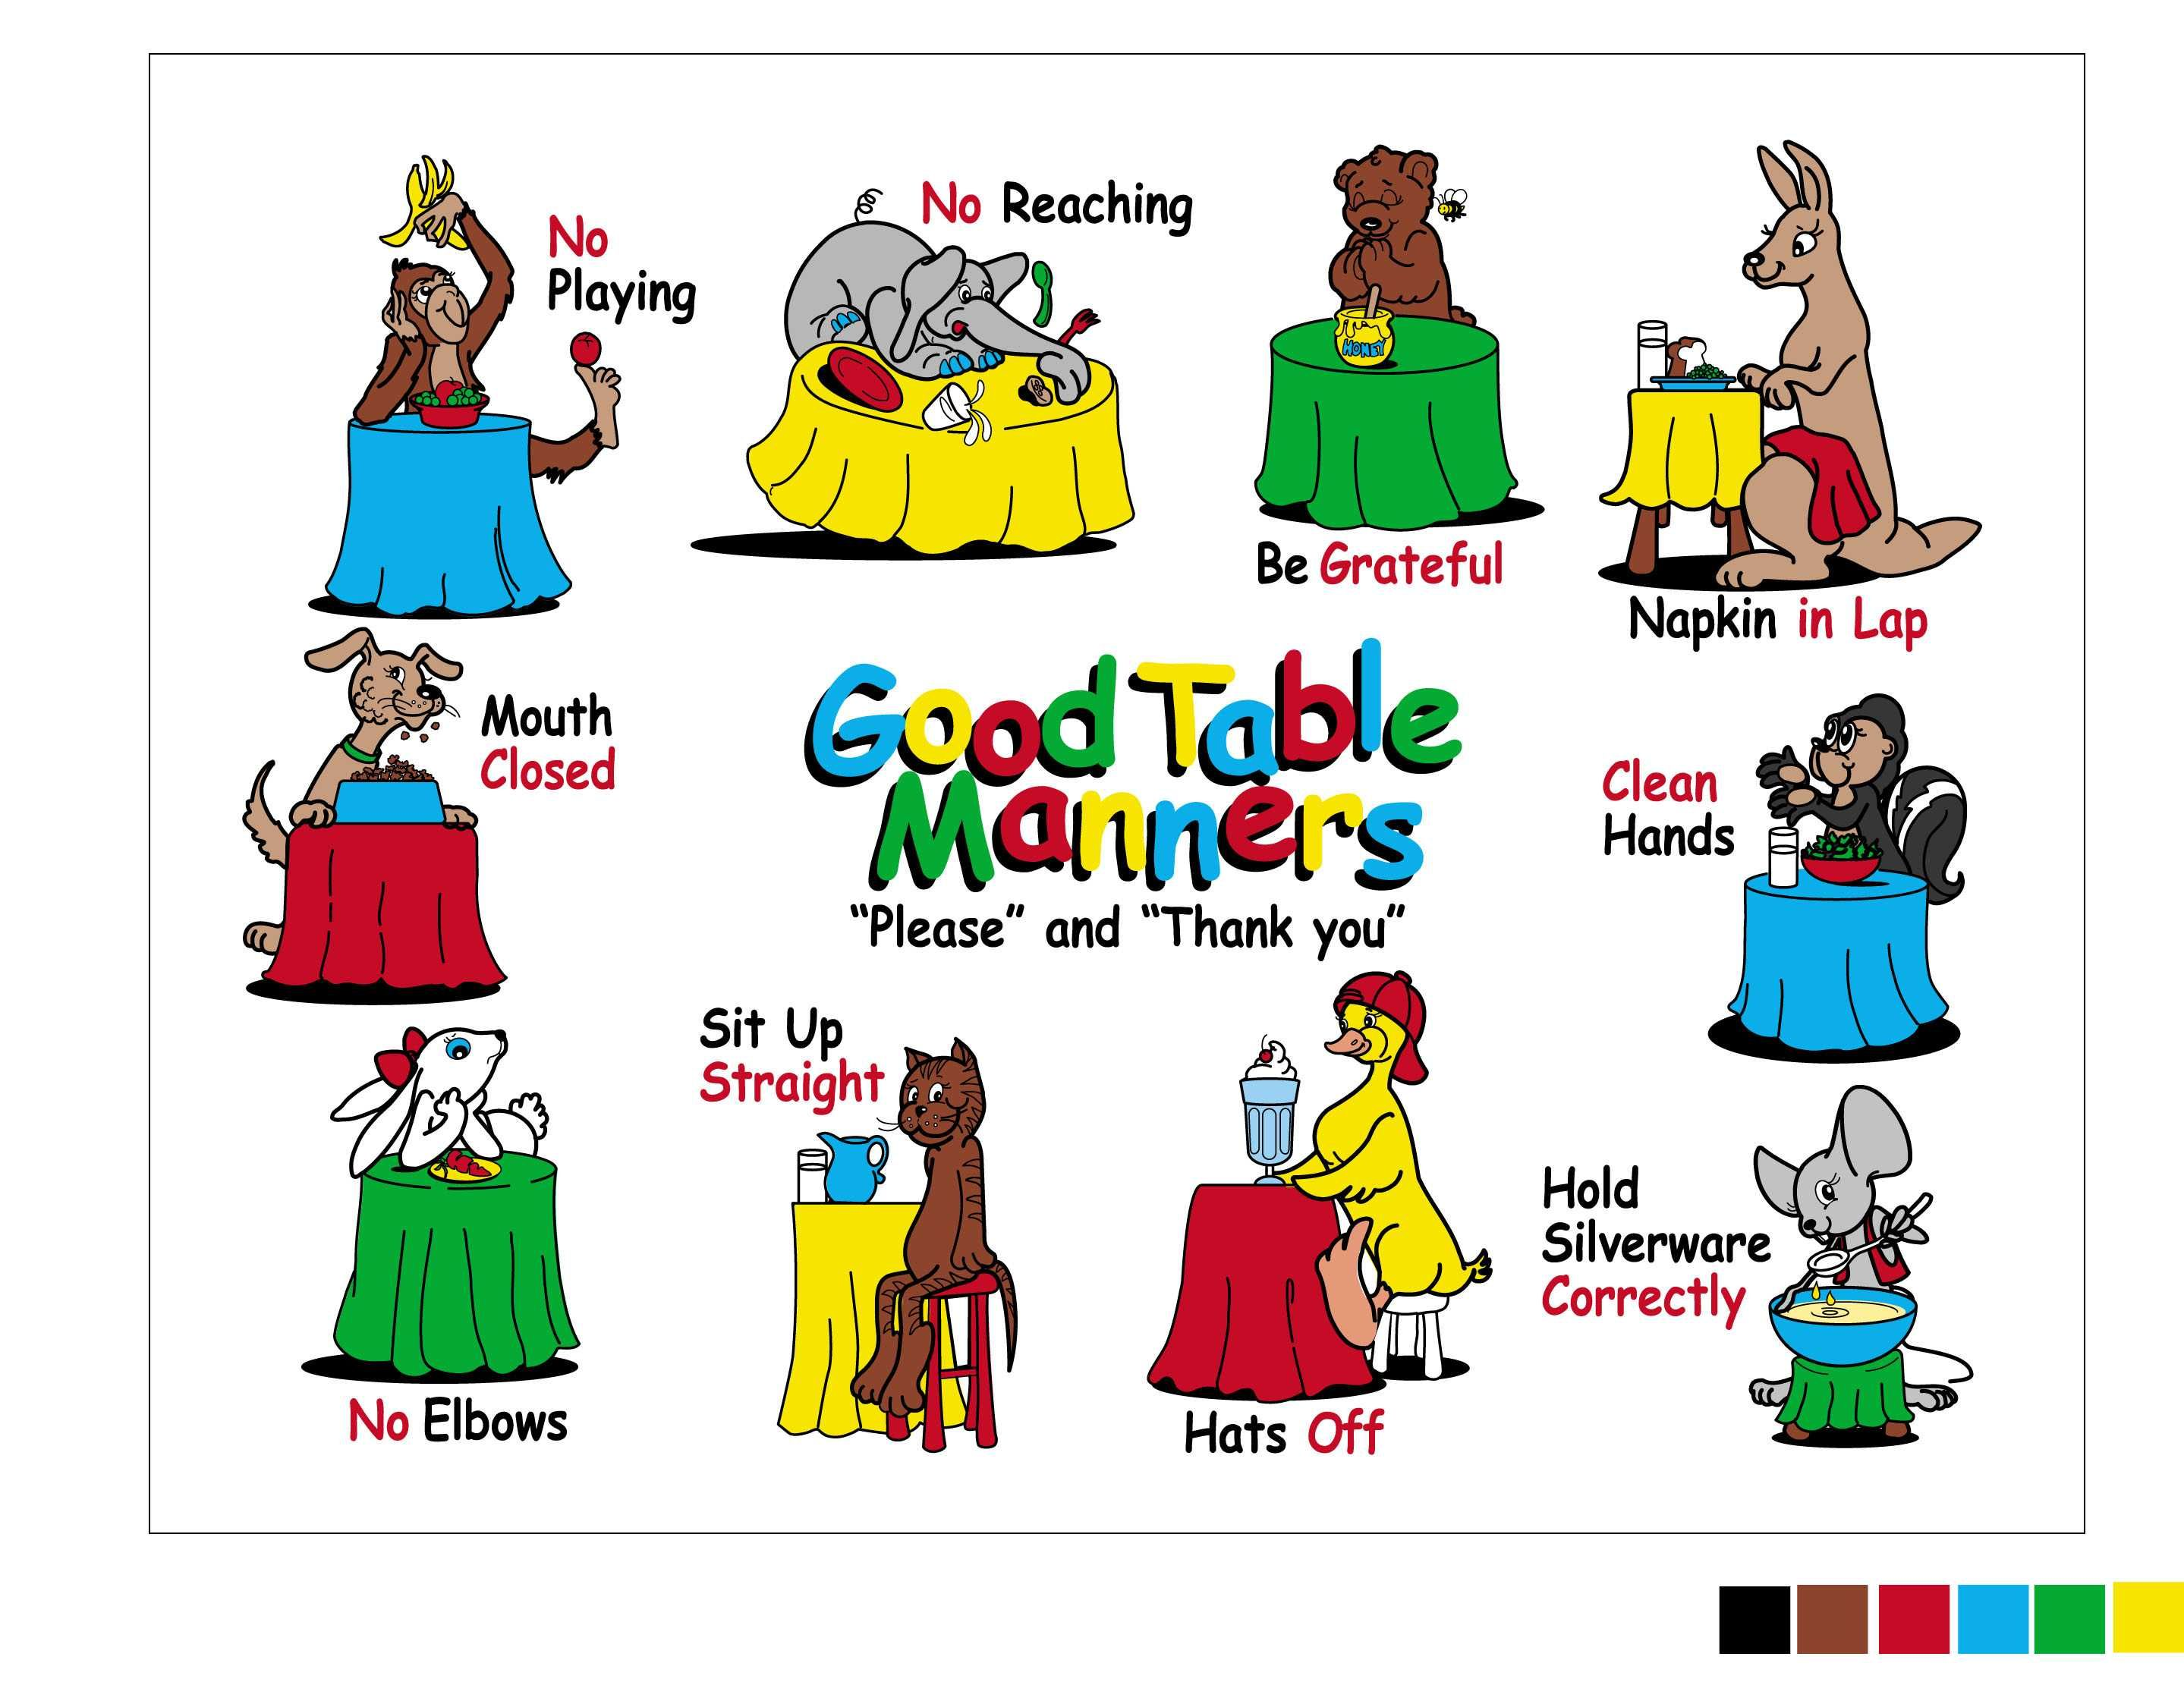 The Good Table Manners Placemat for teaching 3.